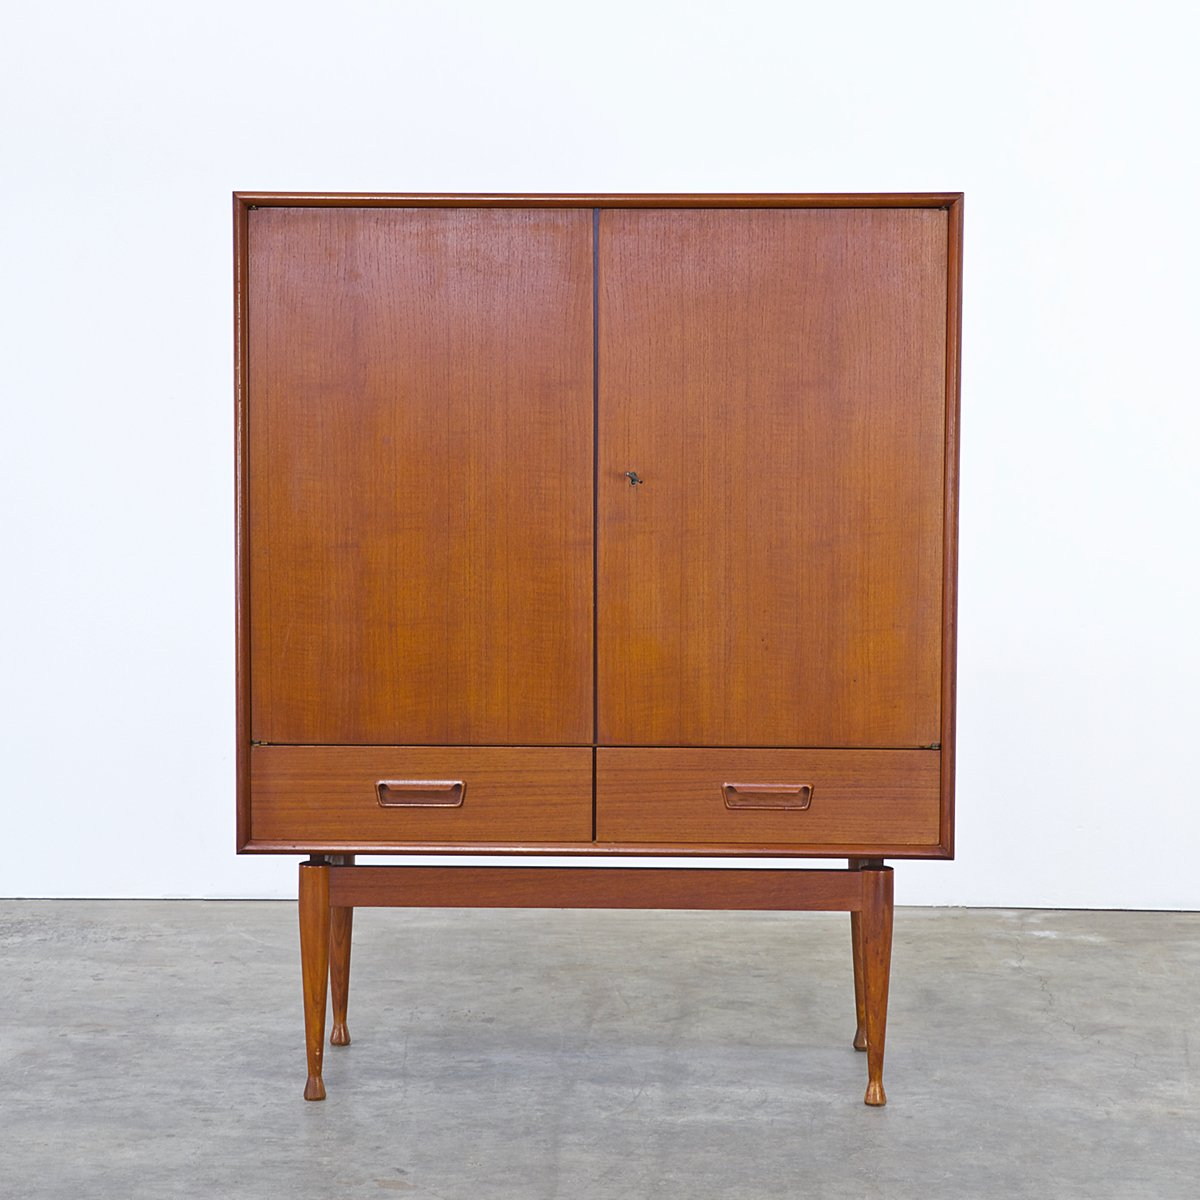 Teak Cabinet With Two Doors And Two Drawers, 1960s